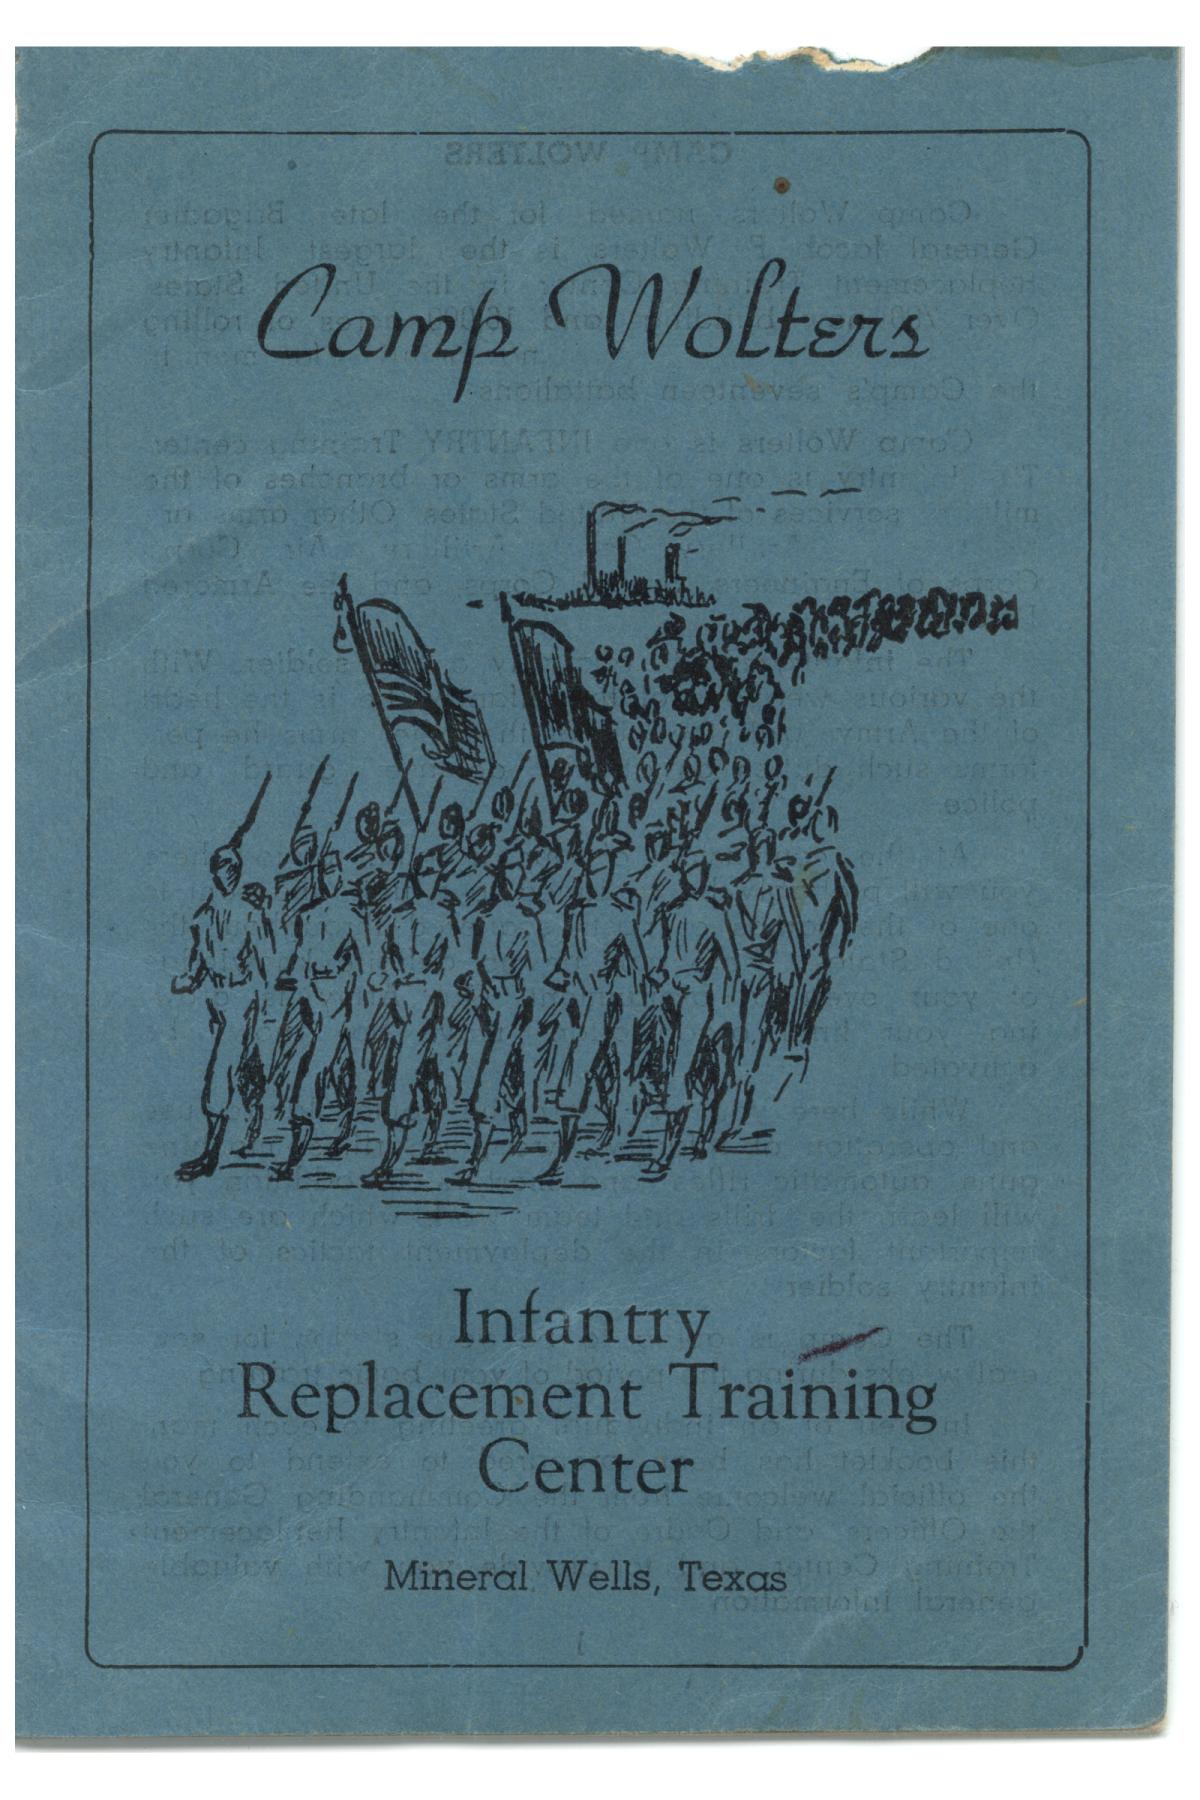 Camp Wolters, Infantry Replacement Training Center, Mineral Wells, Texas                                                                                                      [Sequence #]: 1 of 19